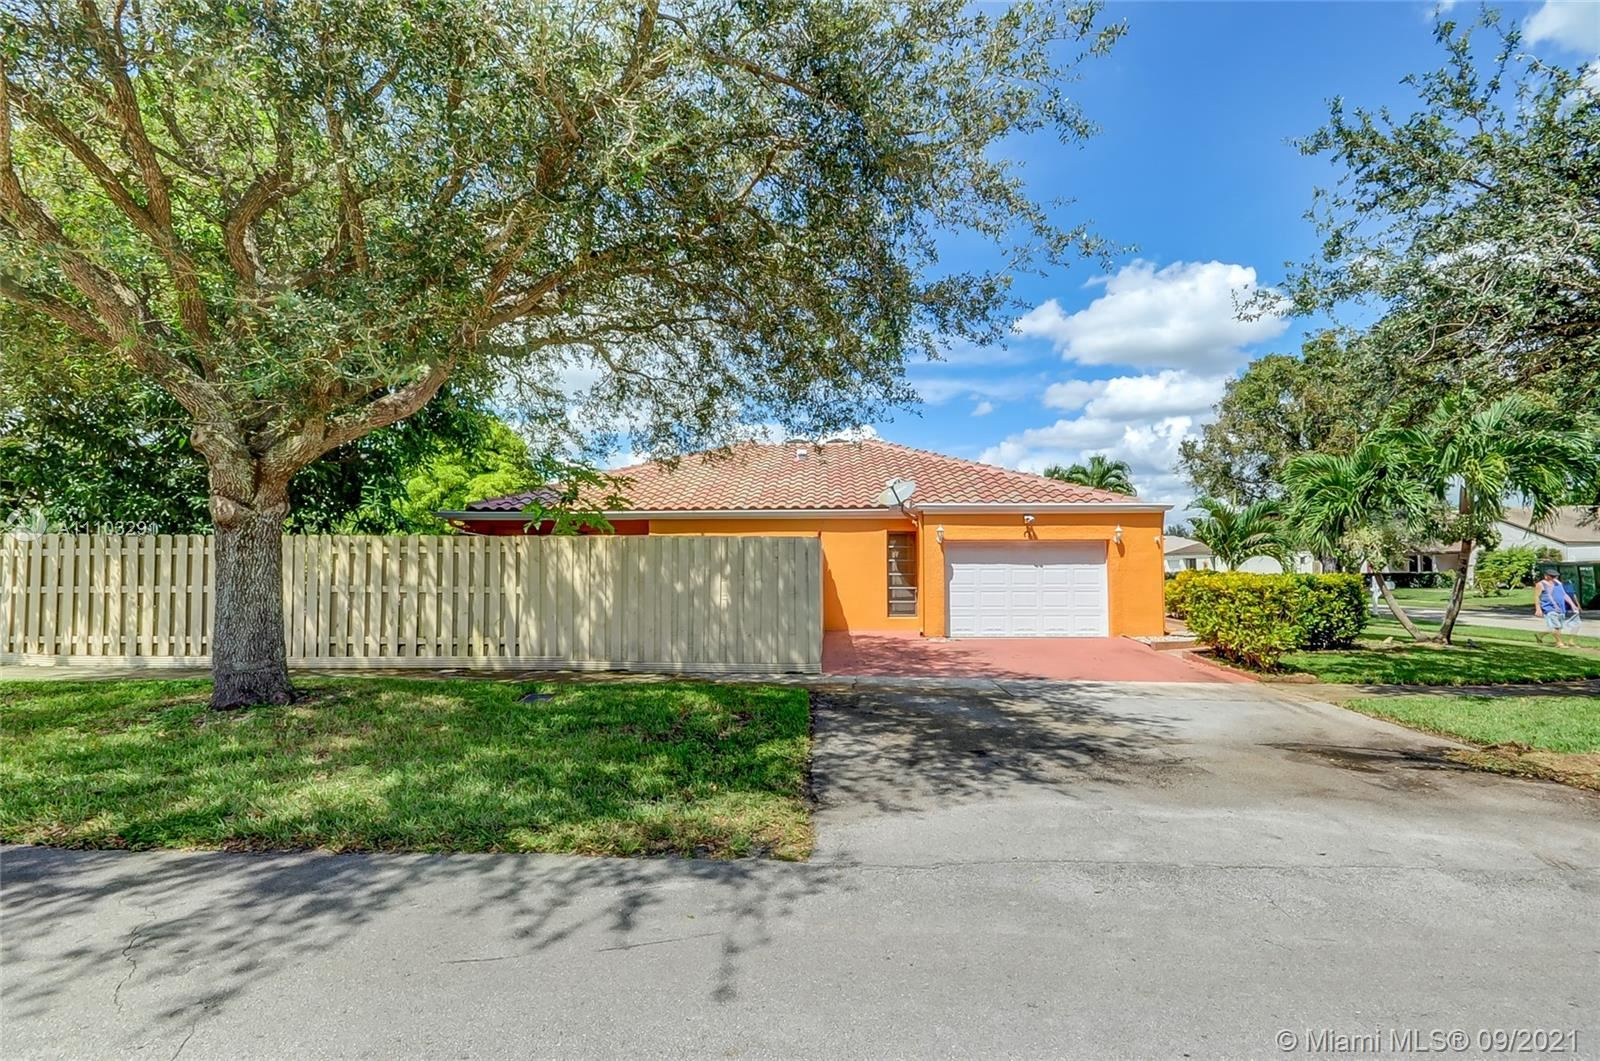 Photo of 4997 SW 95th Ave, Cooper City, FL 33328 (MLS # A11103291)